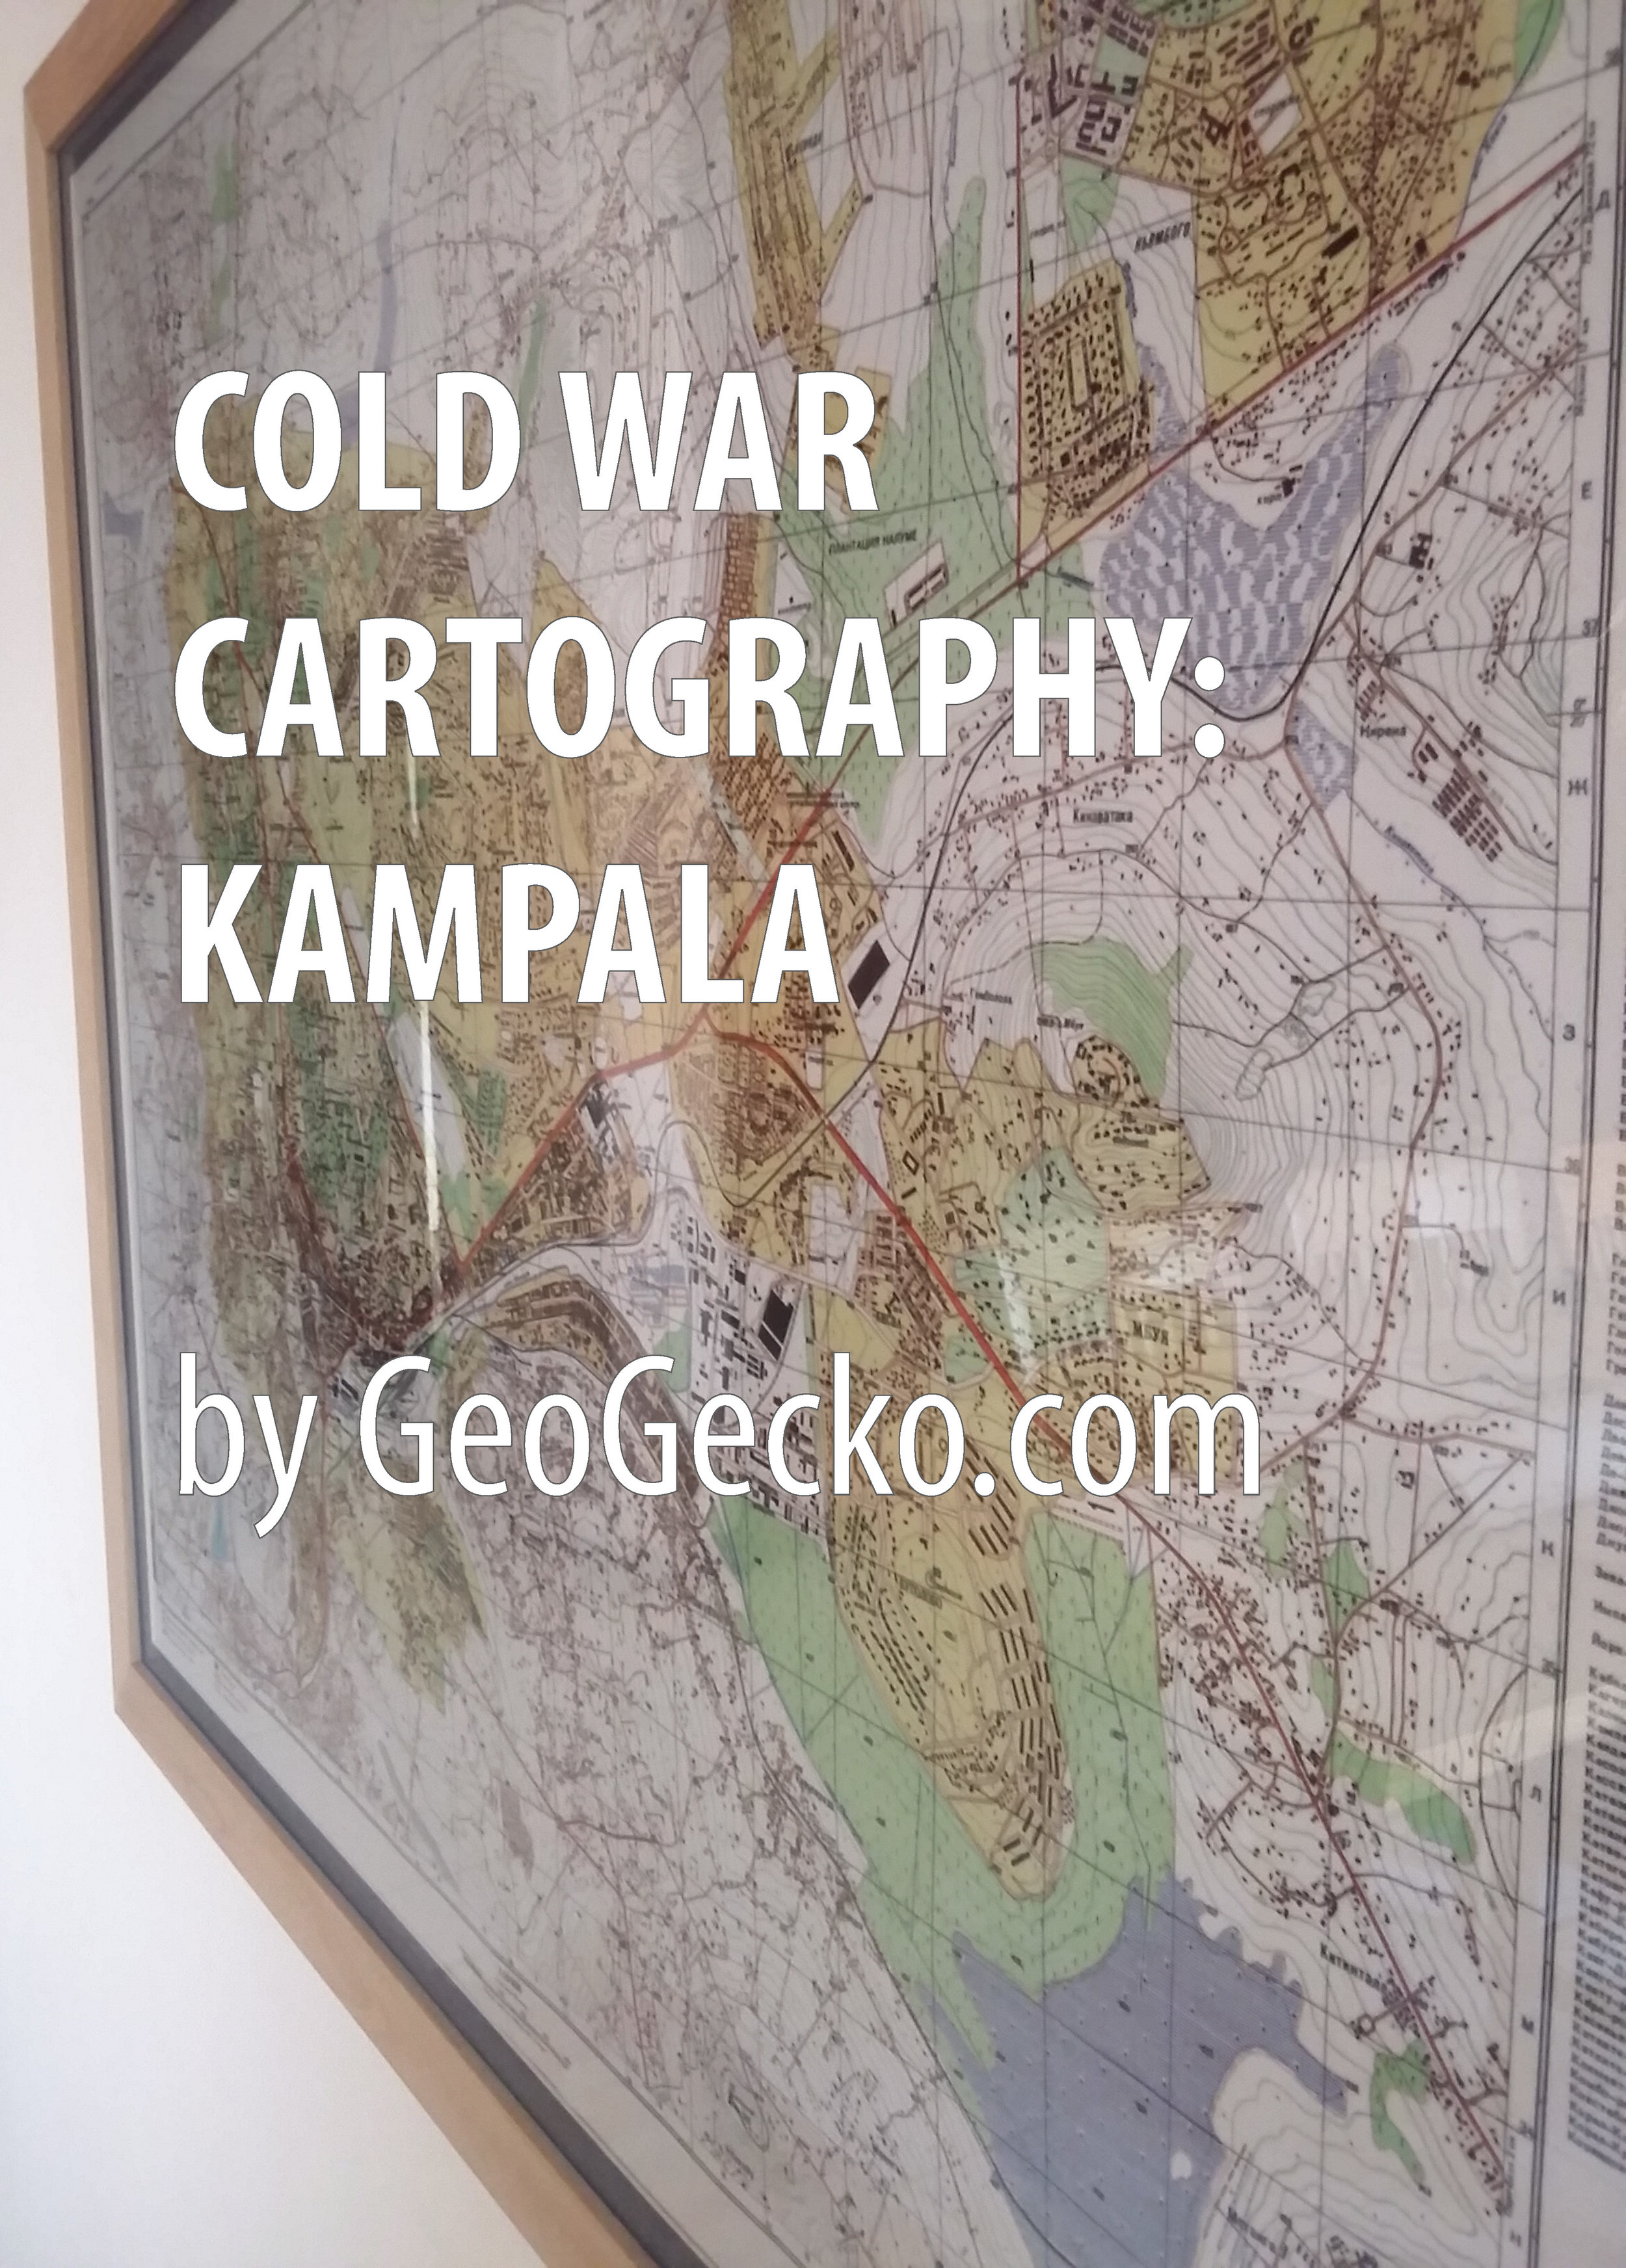 ColdWarCartography